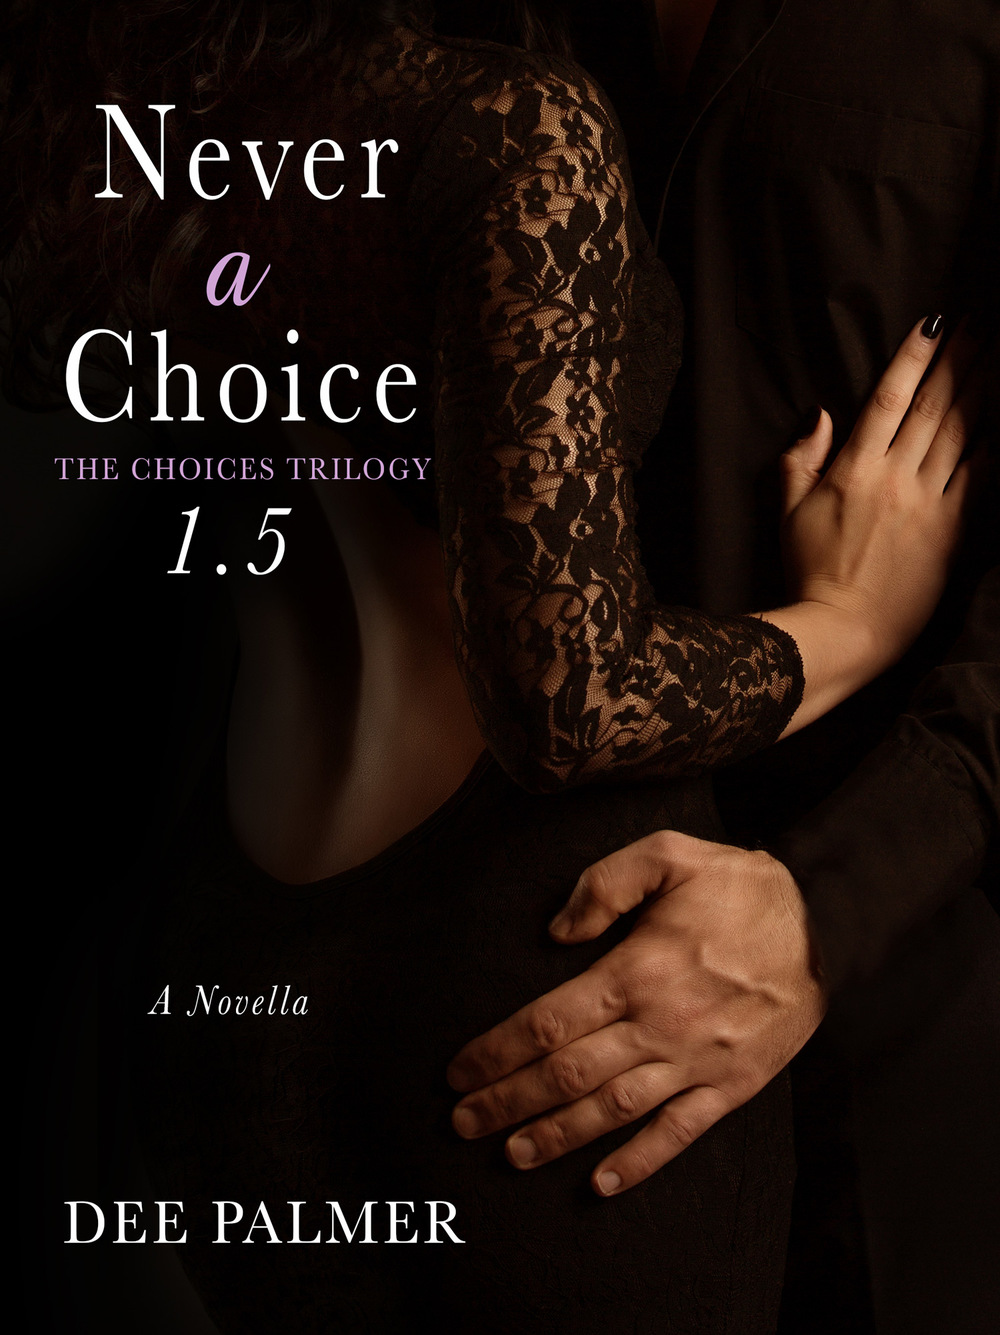 Never-a-Choice-1.5-COVER.jpg